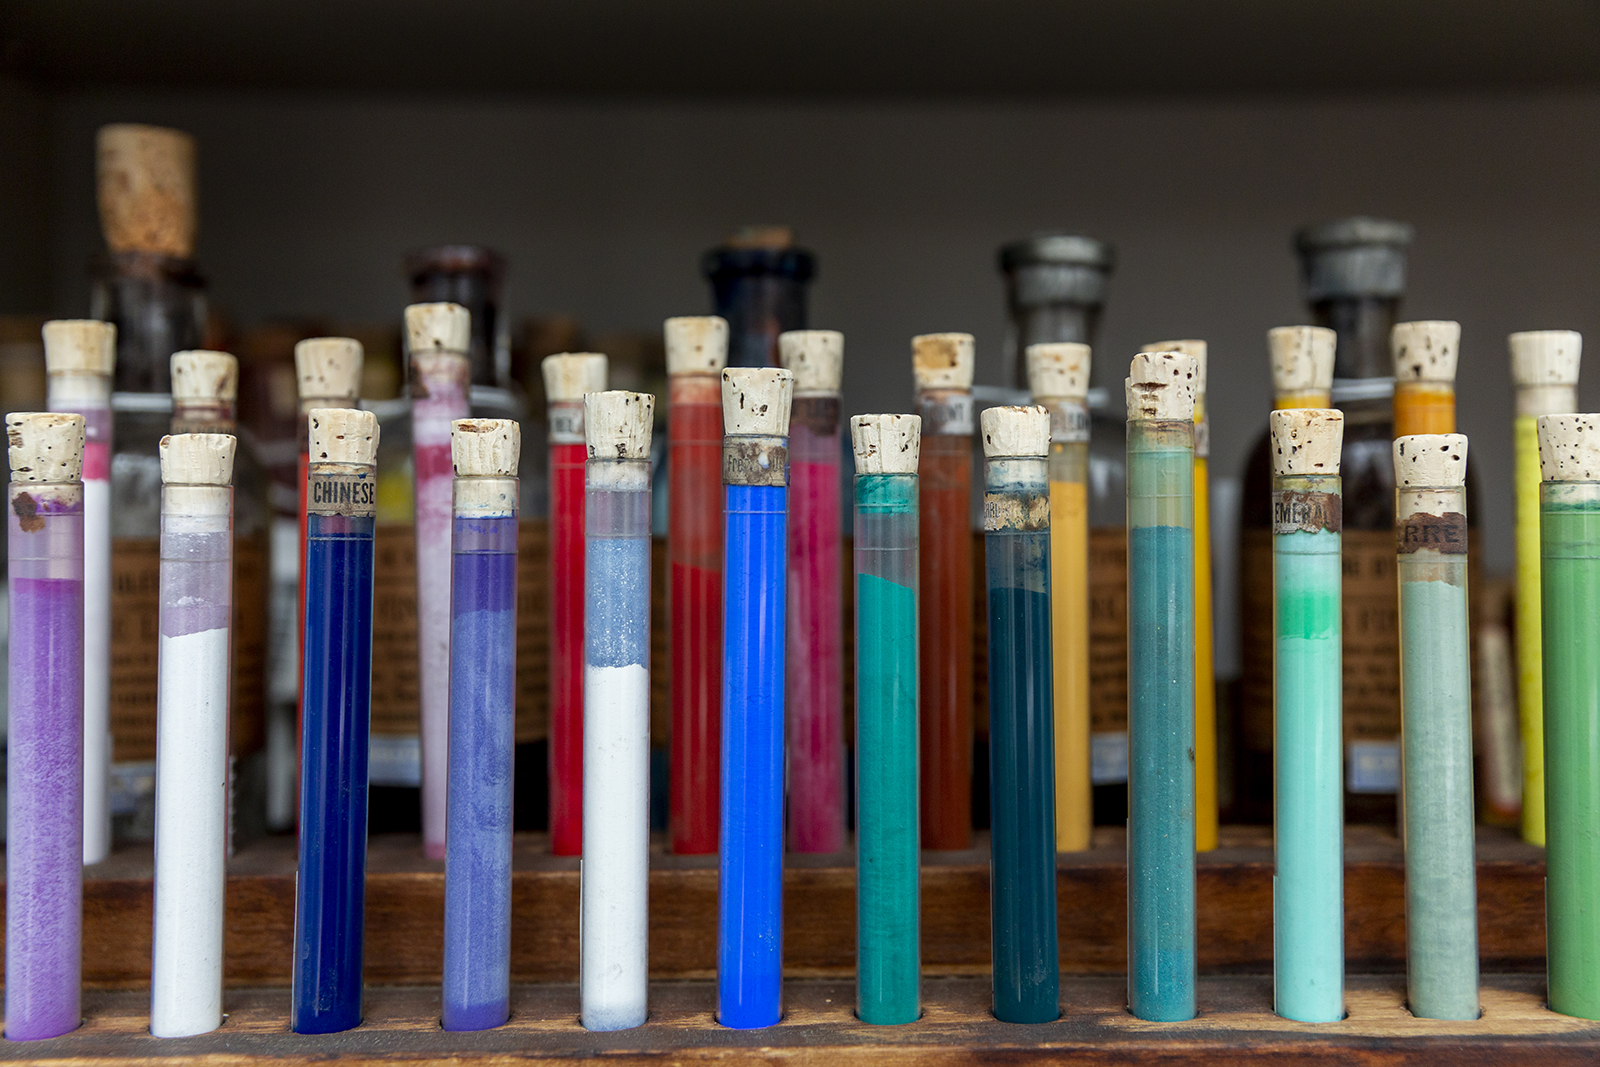 Group of glass sample tubes in a wooden container, displaying pigments of a variety of colors including purples, blues, and greens.